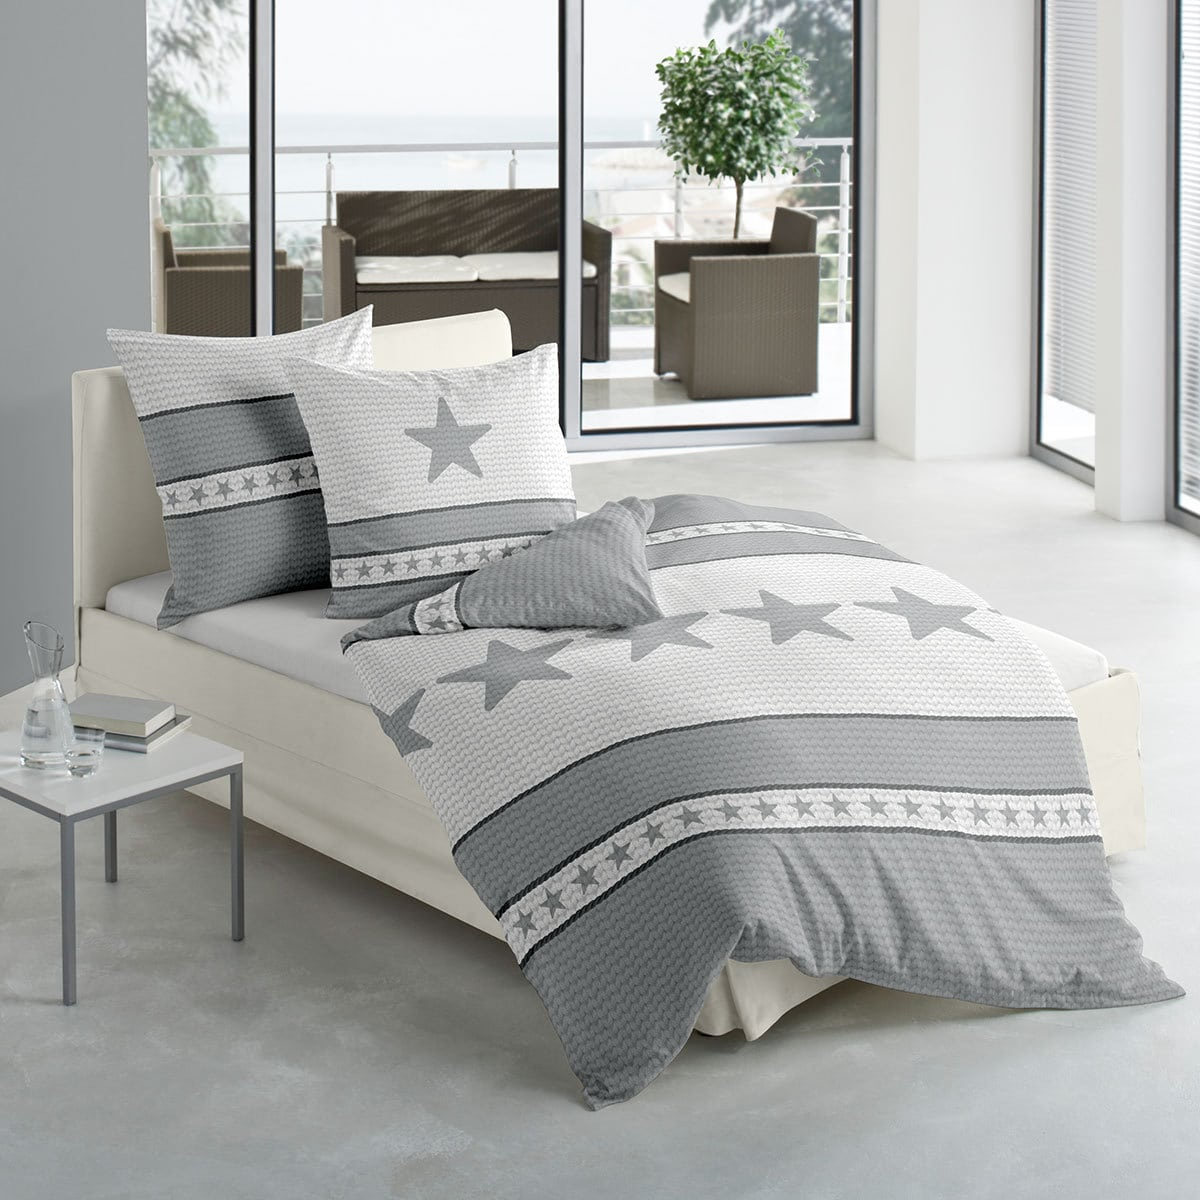 traumschlaf biber bettw sche star grau g nstig online kaufen bei bettwaren shop. Black Bedroom Furniture Sets. Home Design Ideas